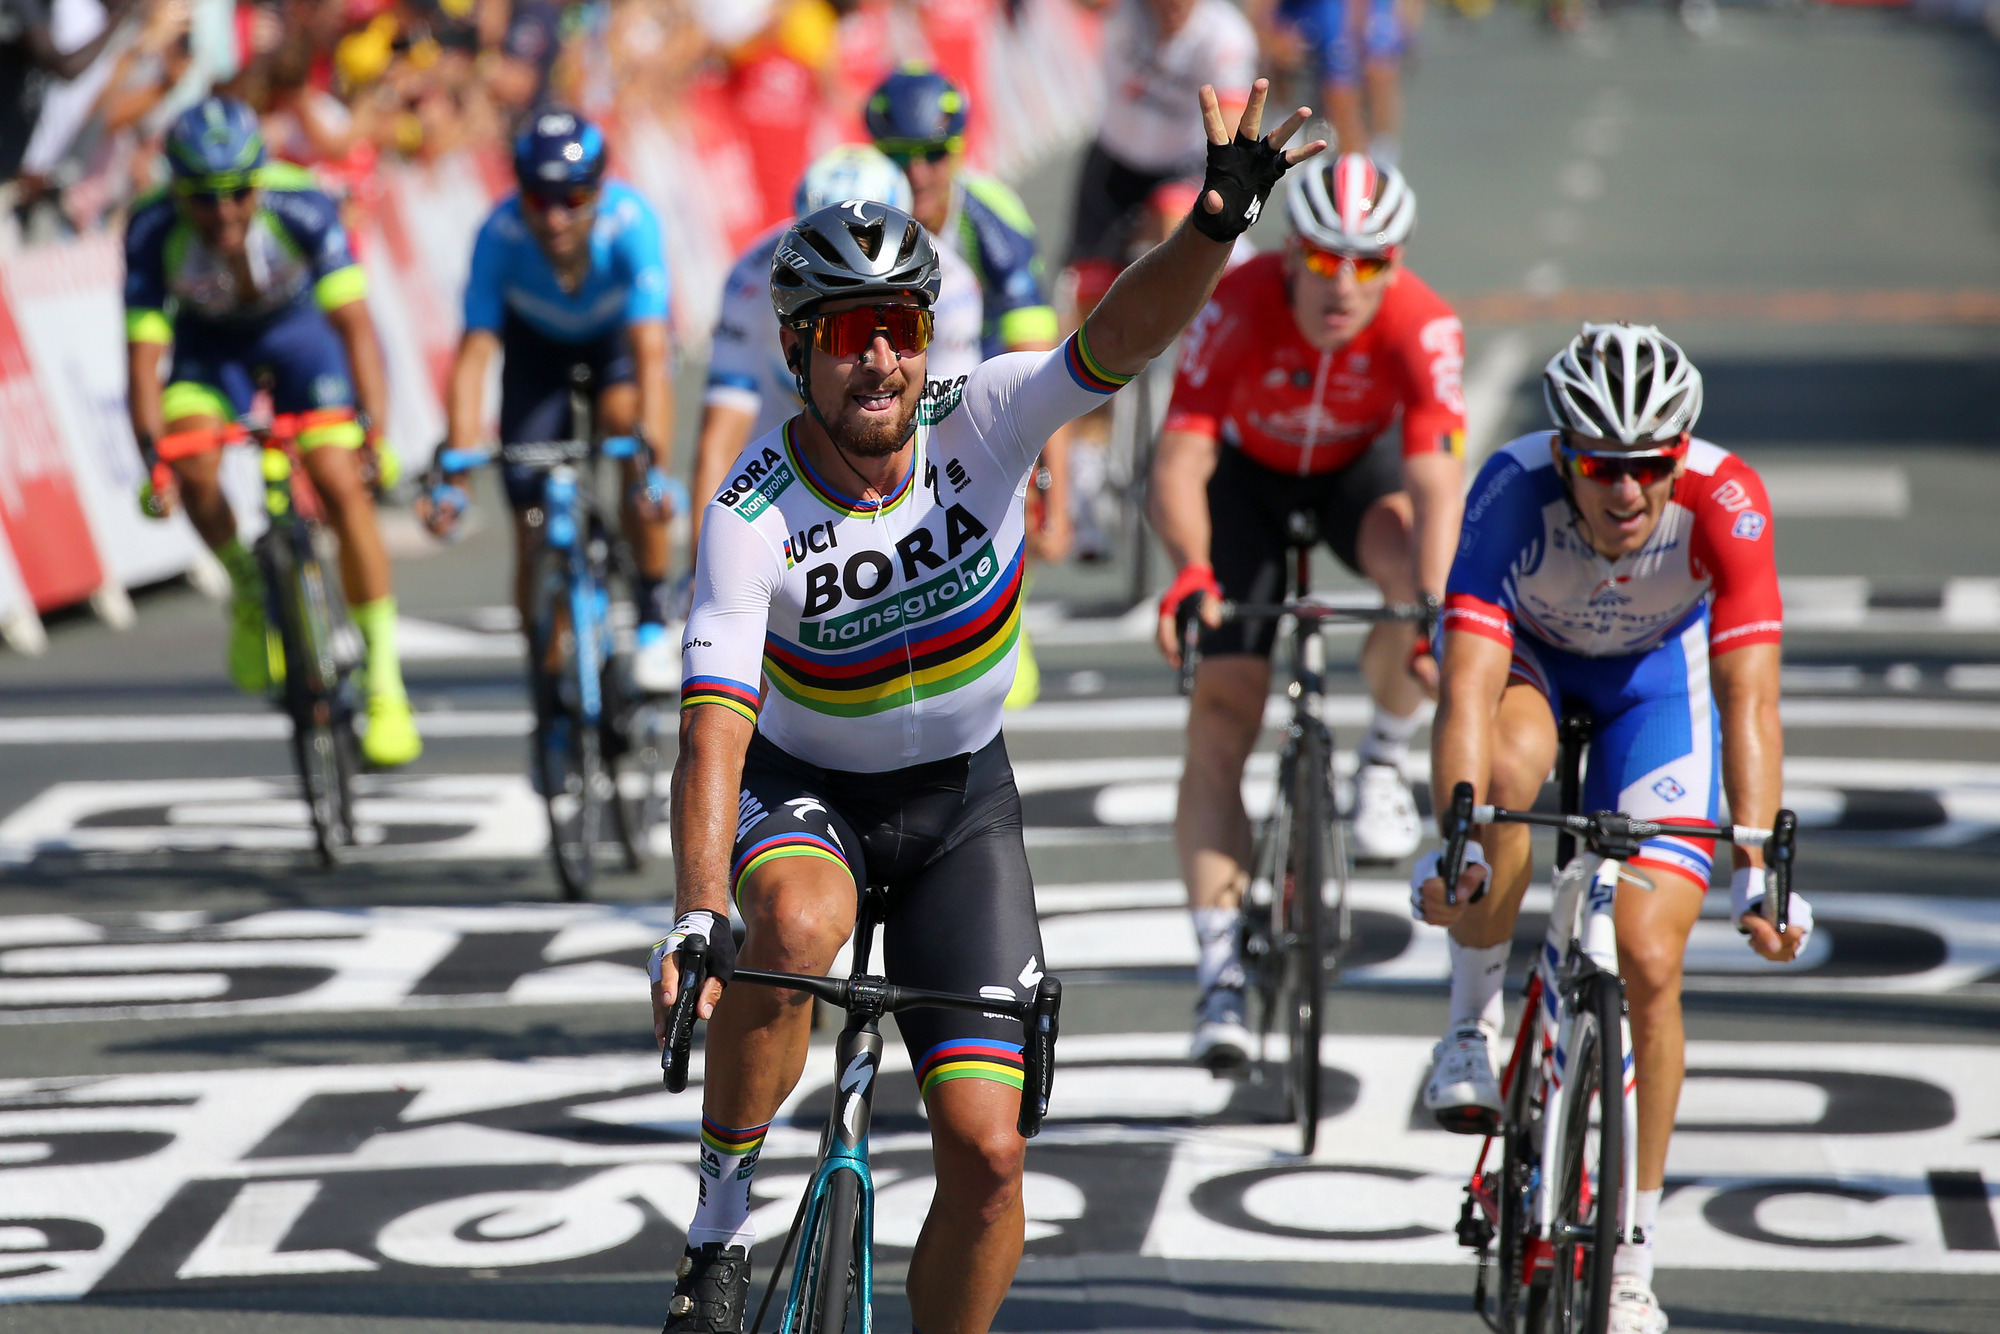 Peter Sagan Takes Over The Yellow Jersey After Winning Stage 2 Of The Tour De France The Bike Comes First